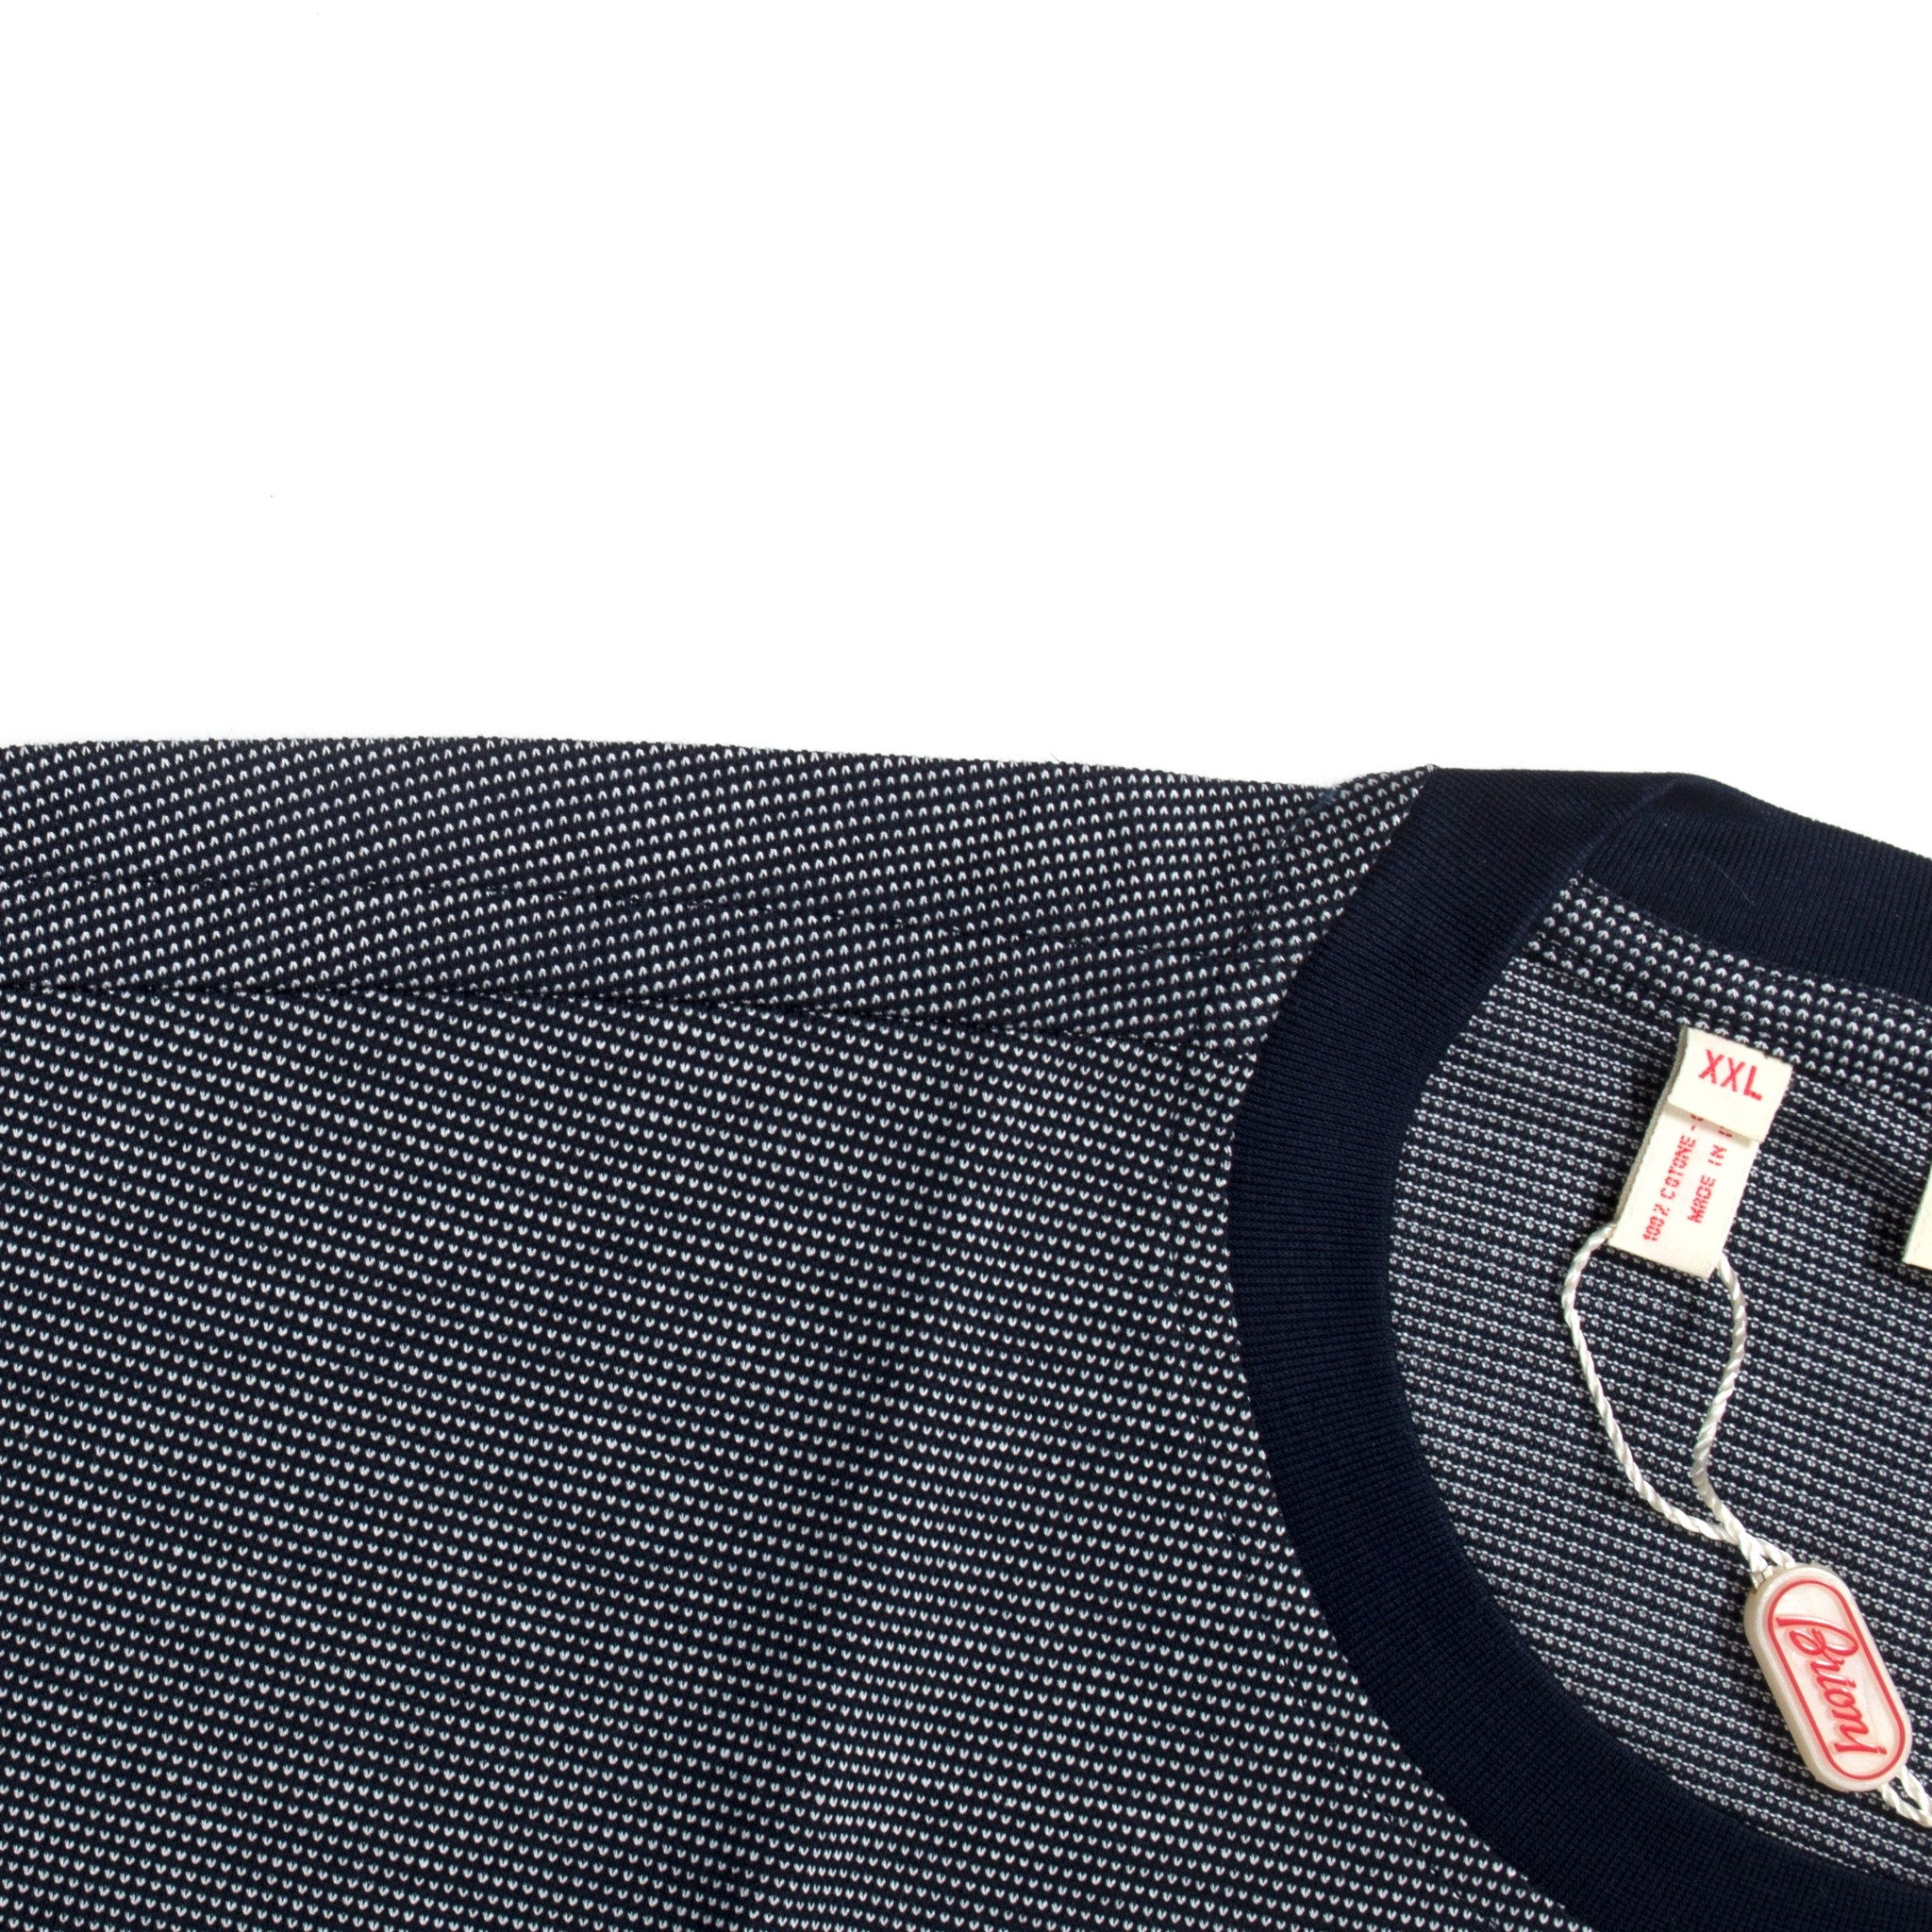 Brioni - Navy & White Pique Knit T-Shirt